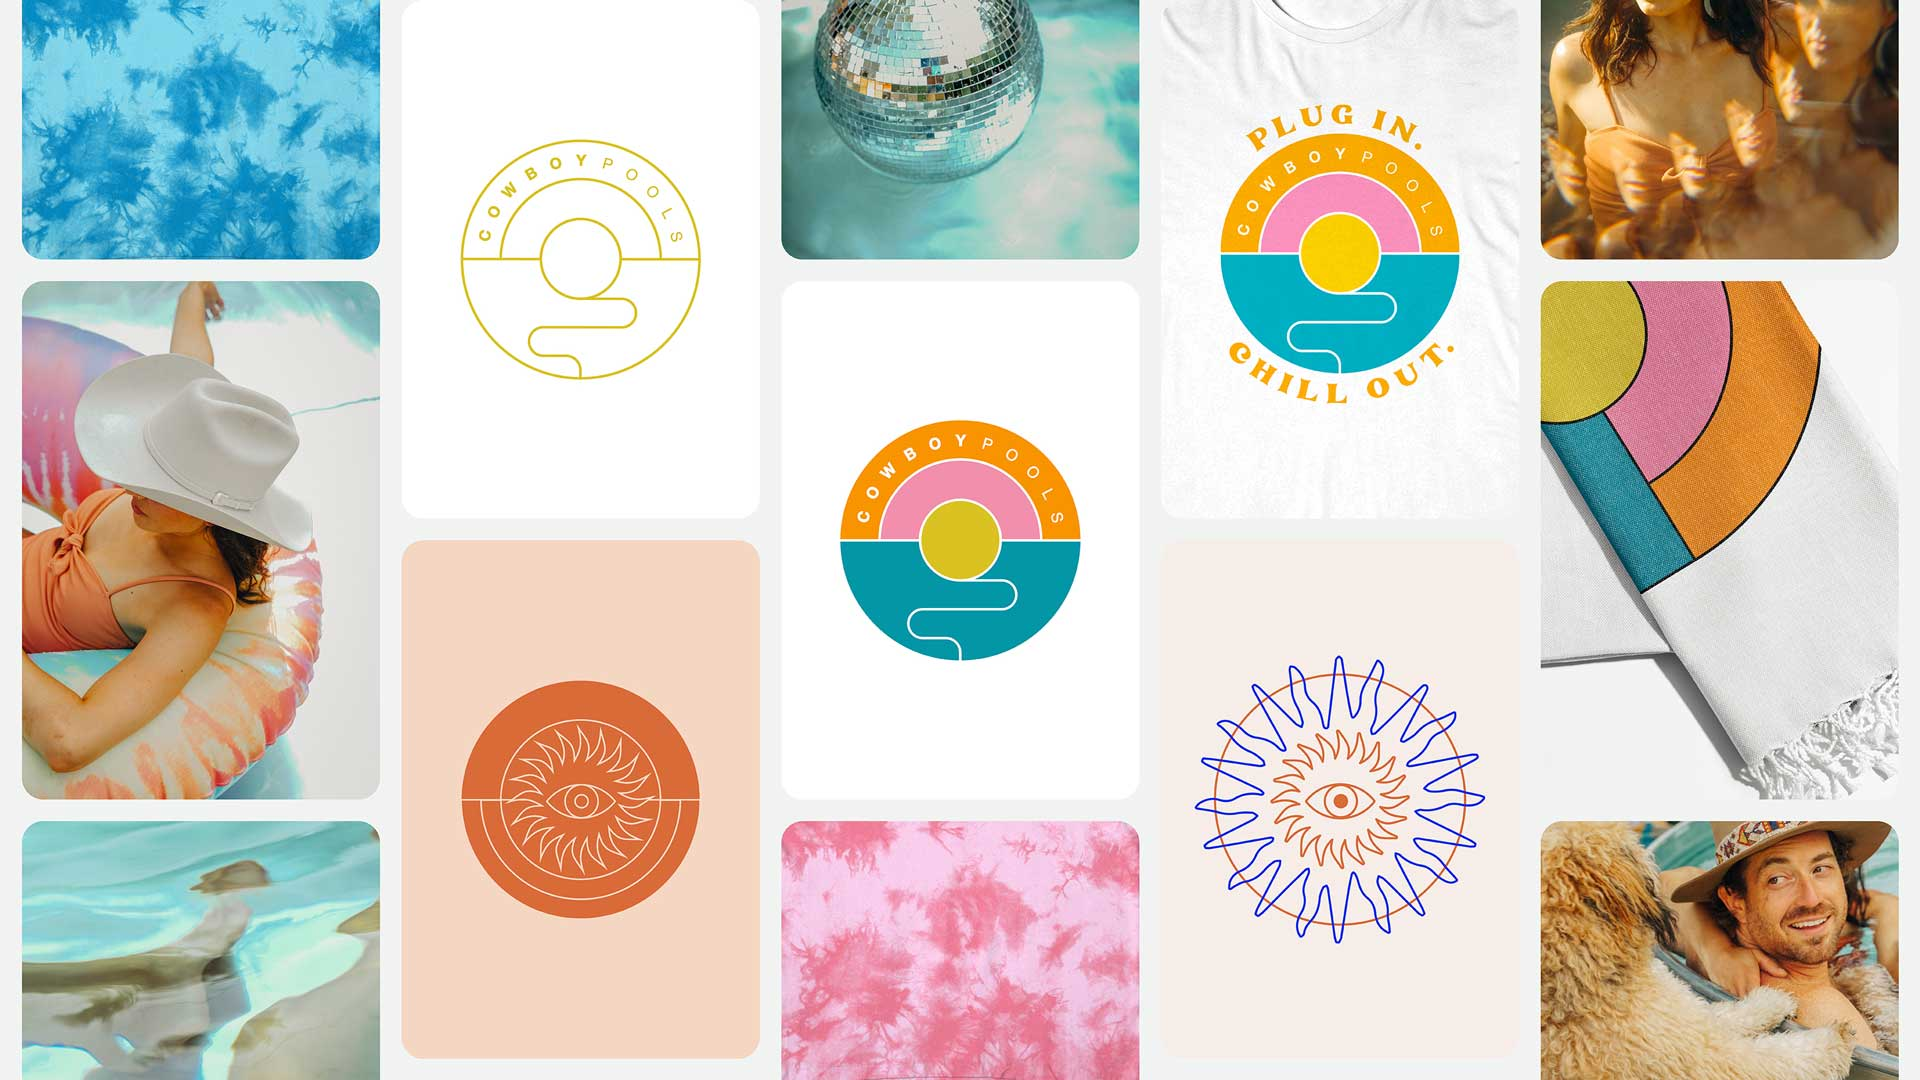 Identity design and moodboard for Cowboy Pools